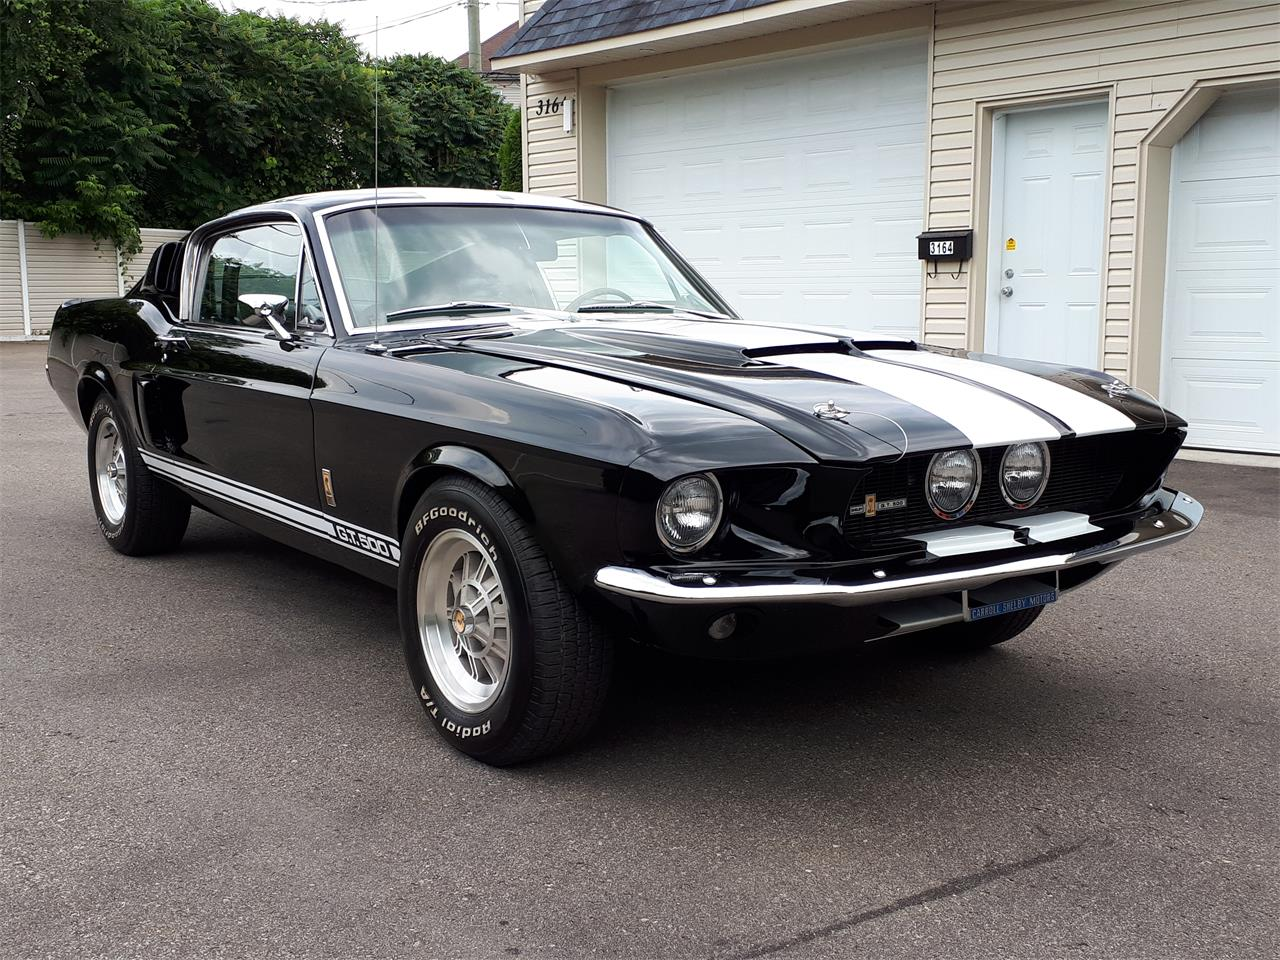 Large Picture of Classic 1967 Ford Mustang located in Quebec - $57,000.00 - QH2P